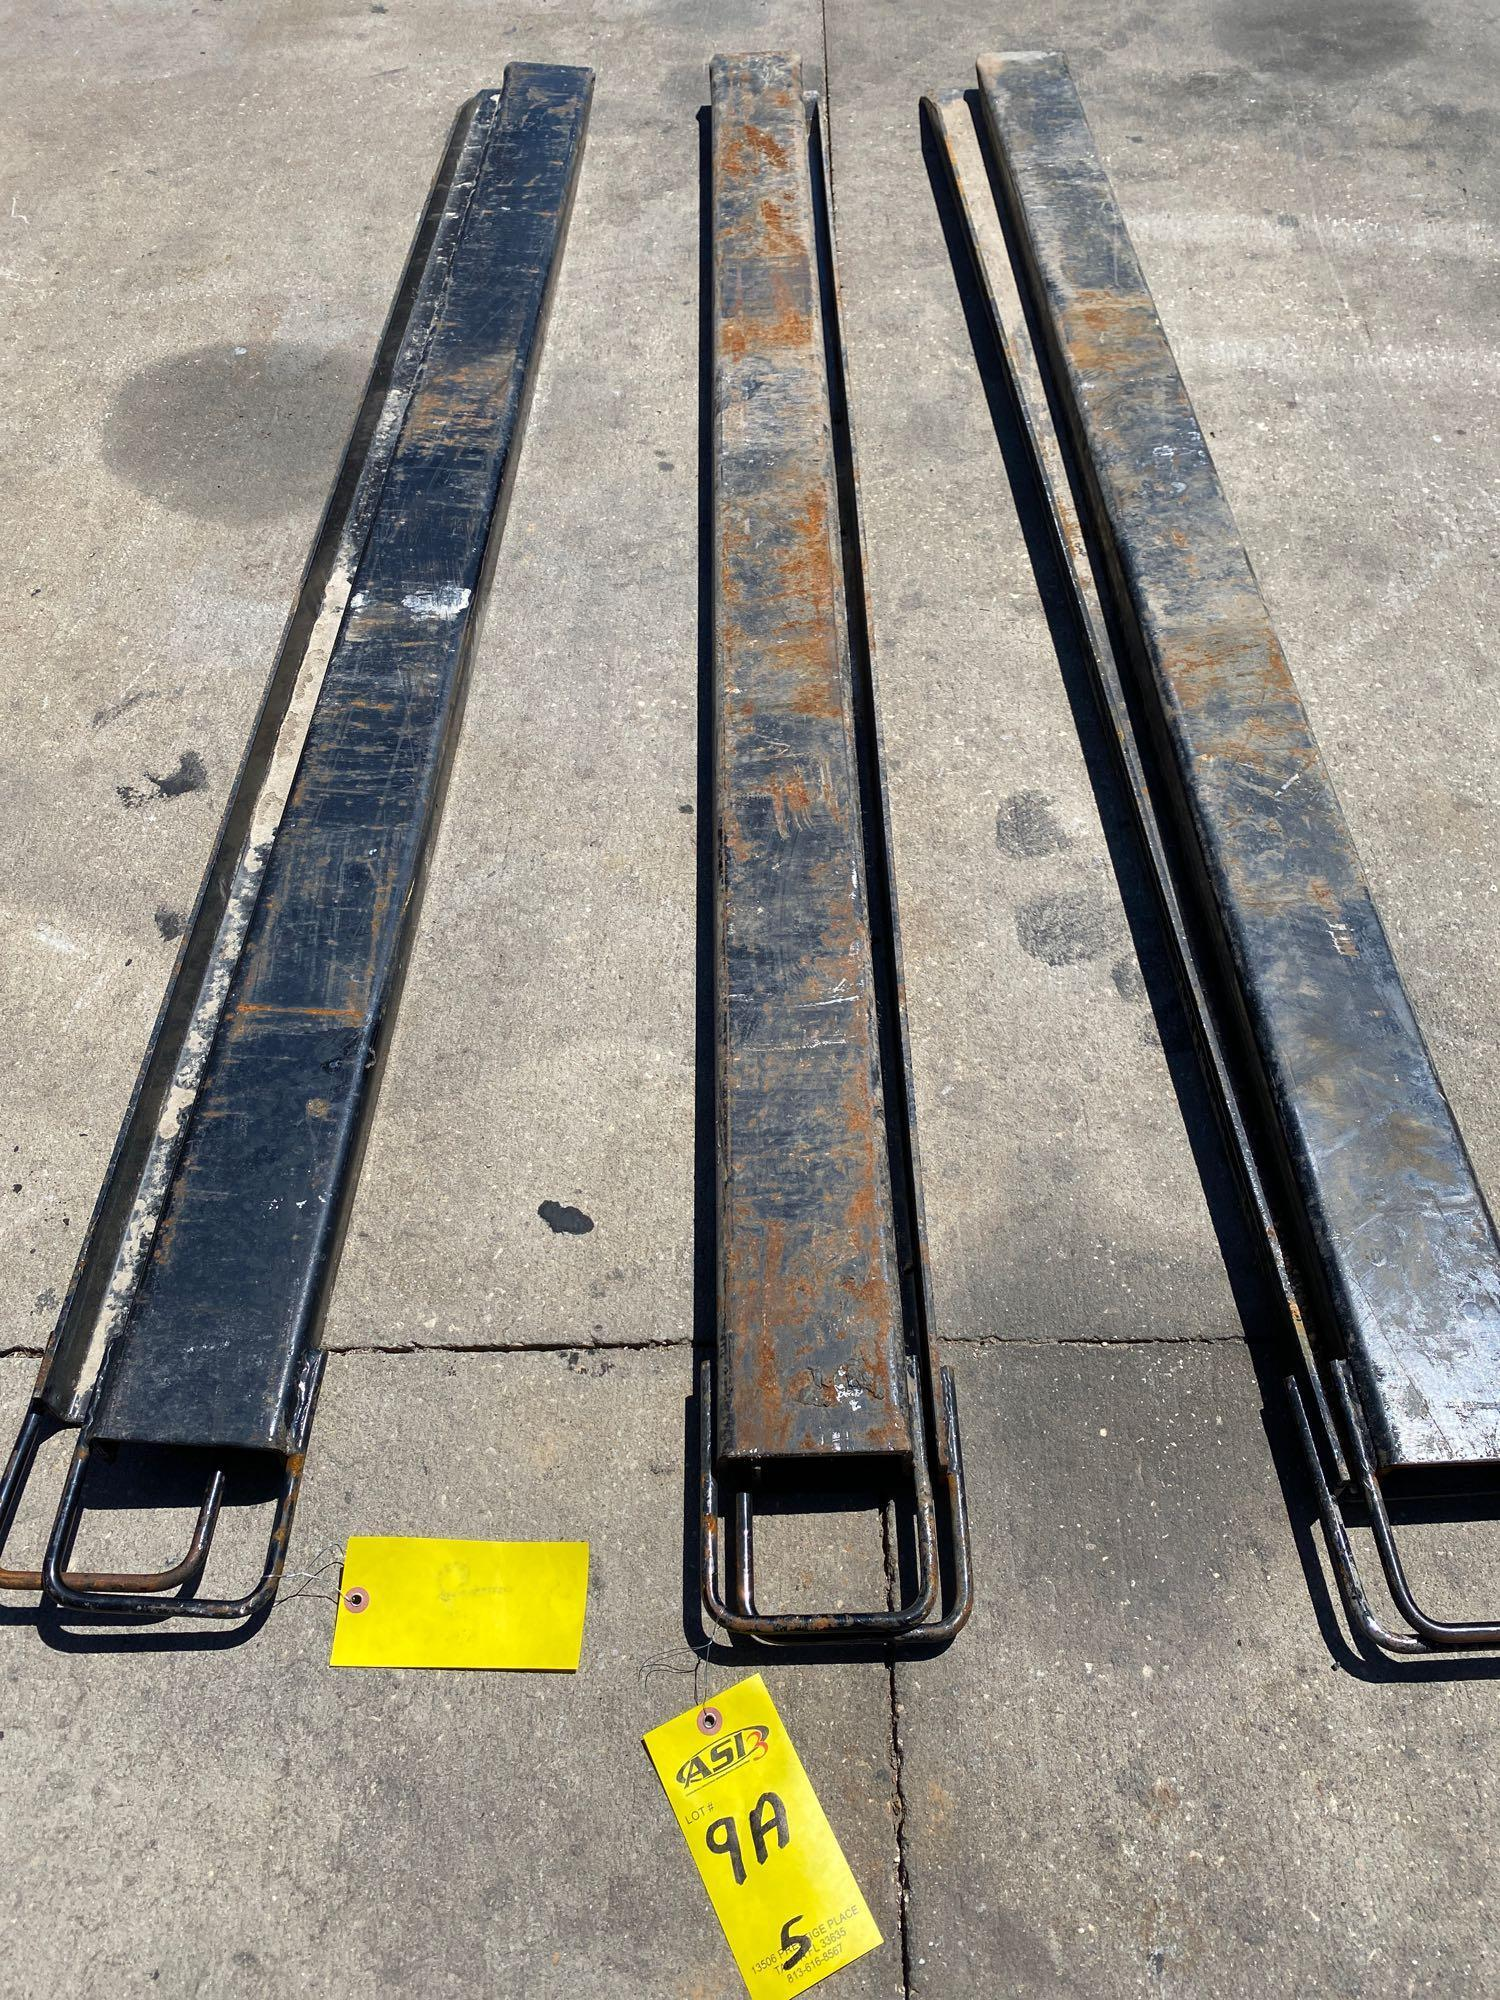 PAIR OF 7' SLIDE ON FORK EXTENSIONS - Image 4 of 5